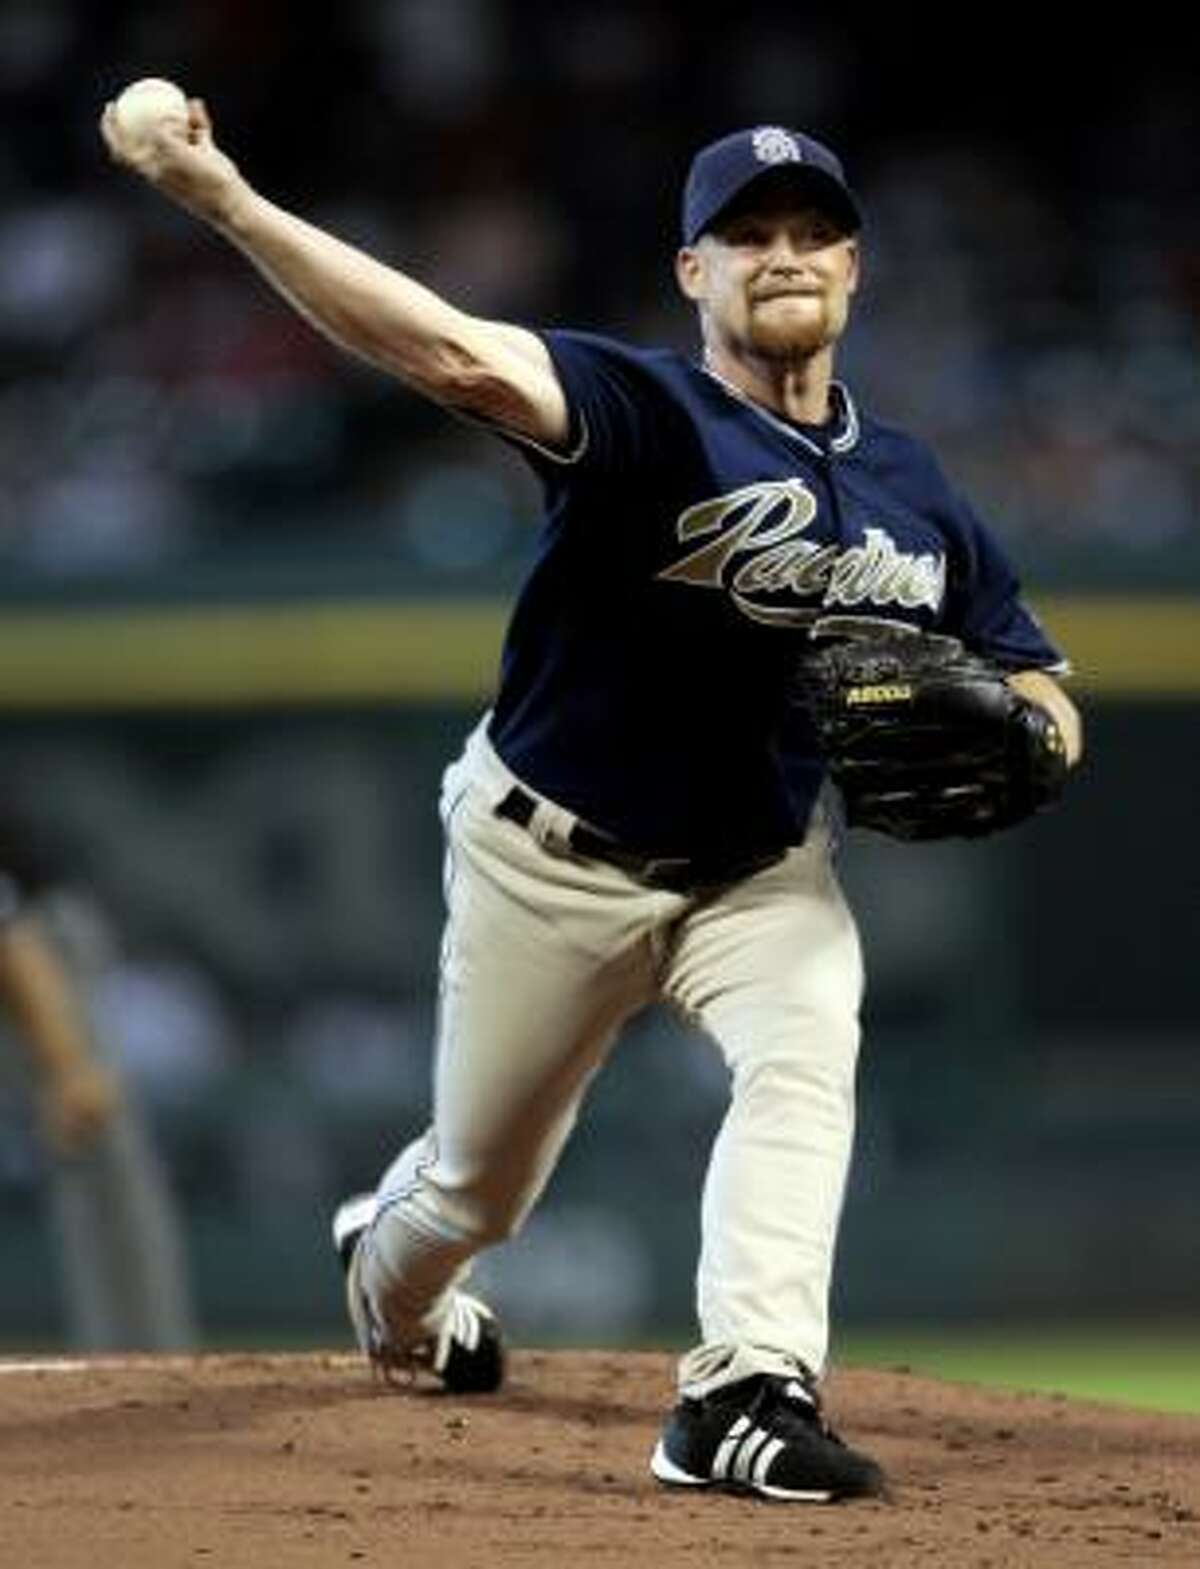 San Diego Padres pitcher Chad Gaudin started in the series opener against the Astros.